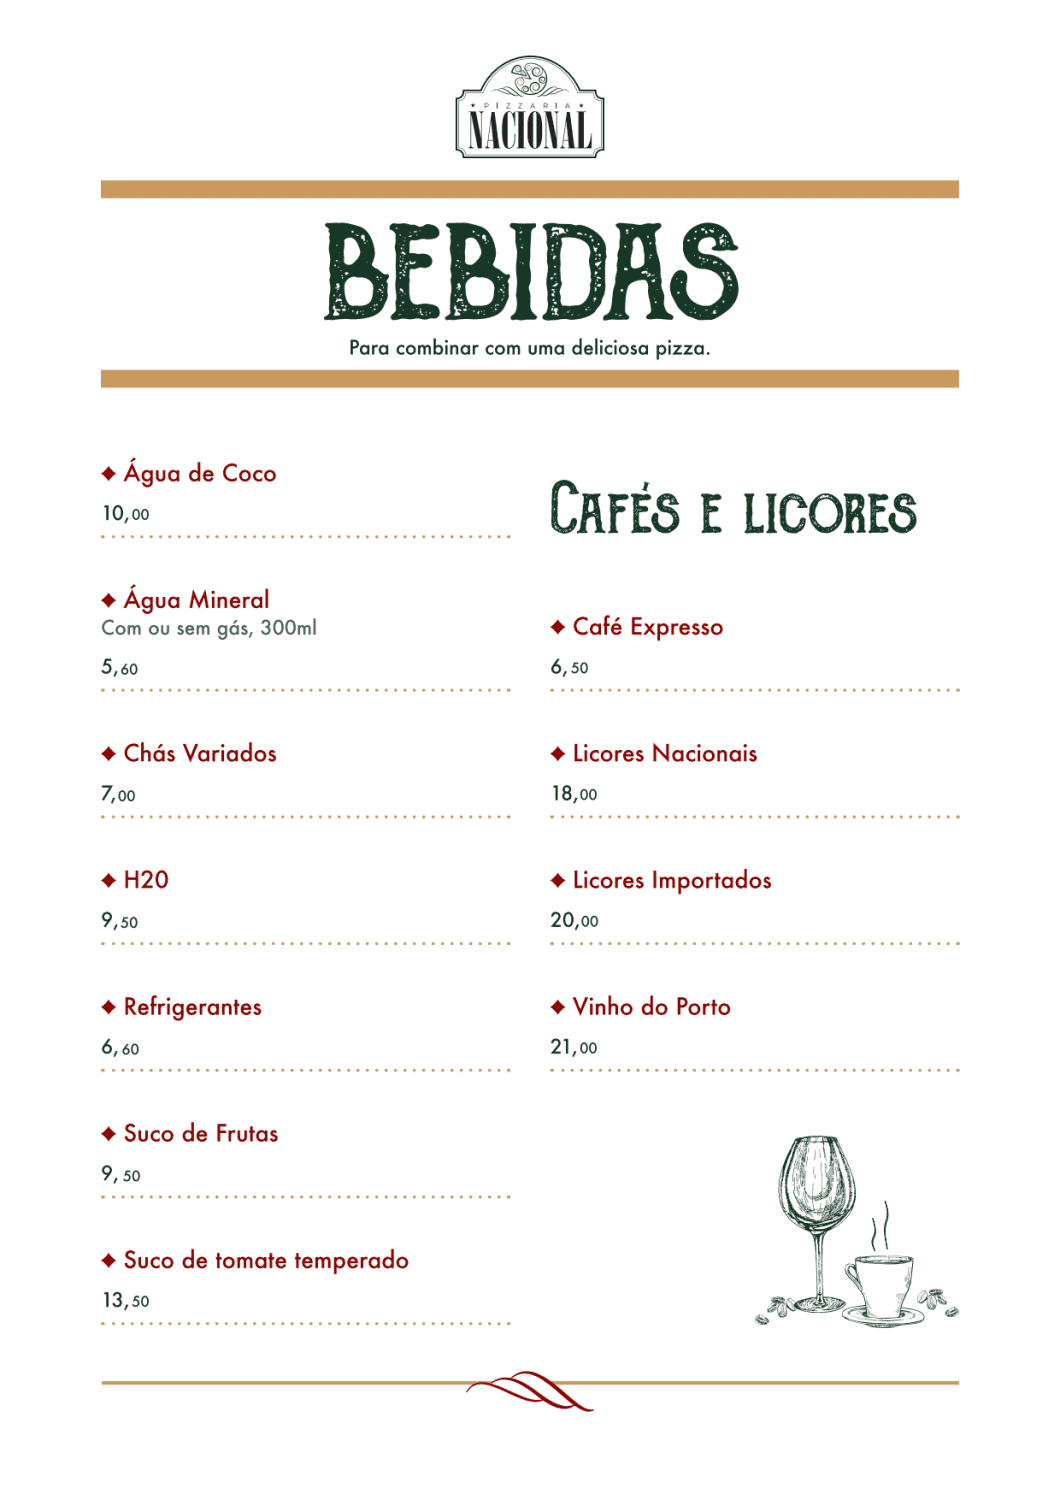 0be38e7fb15 ... Menu do restaurante Pizzaria Nacional - Página 10 ...